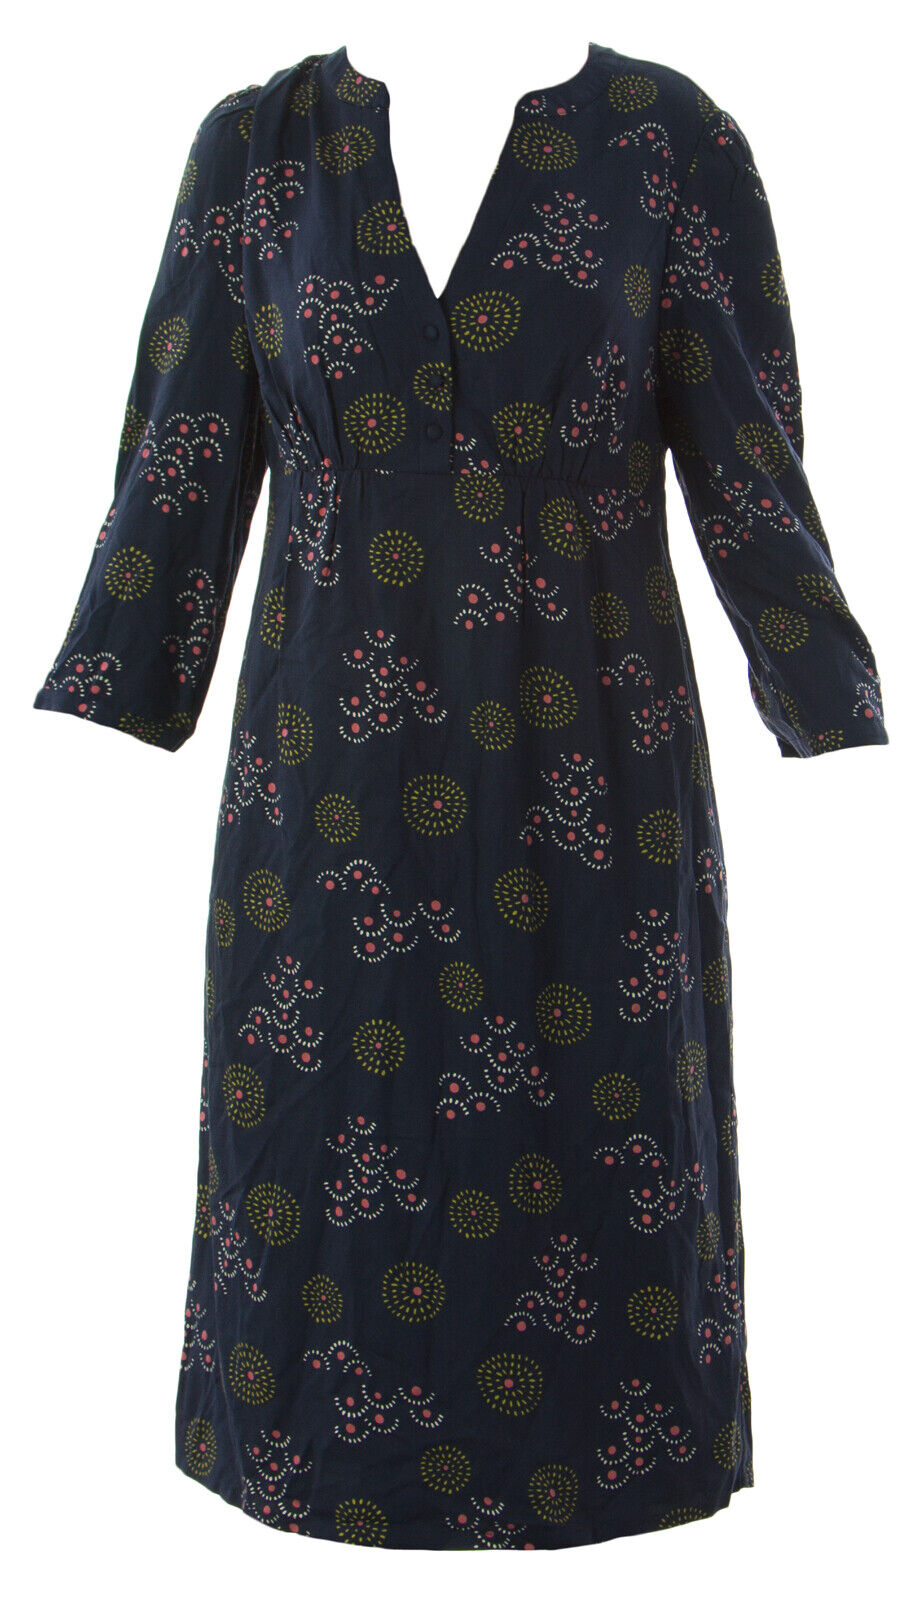 Boden Damen Marineblau Martha Kleid Wh376 Us Sz 4L